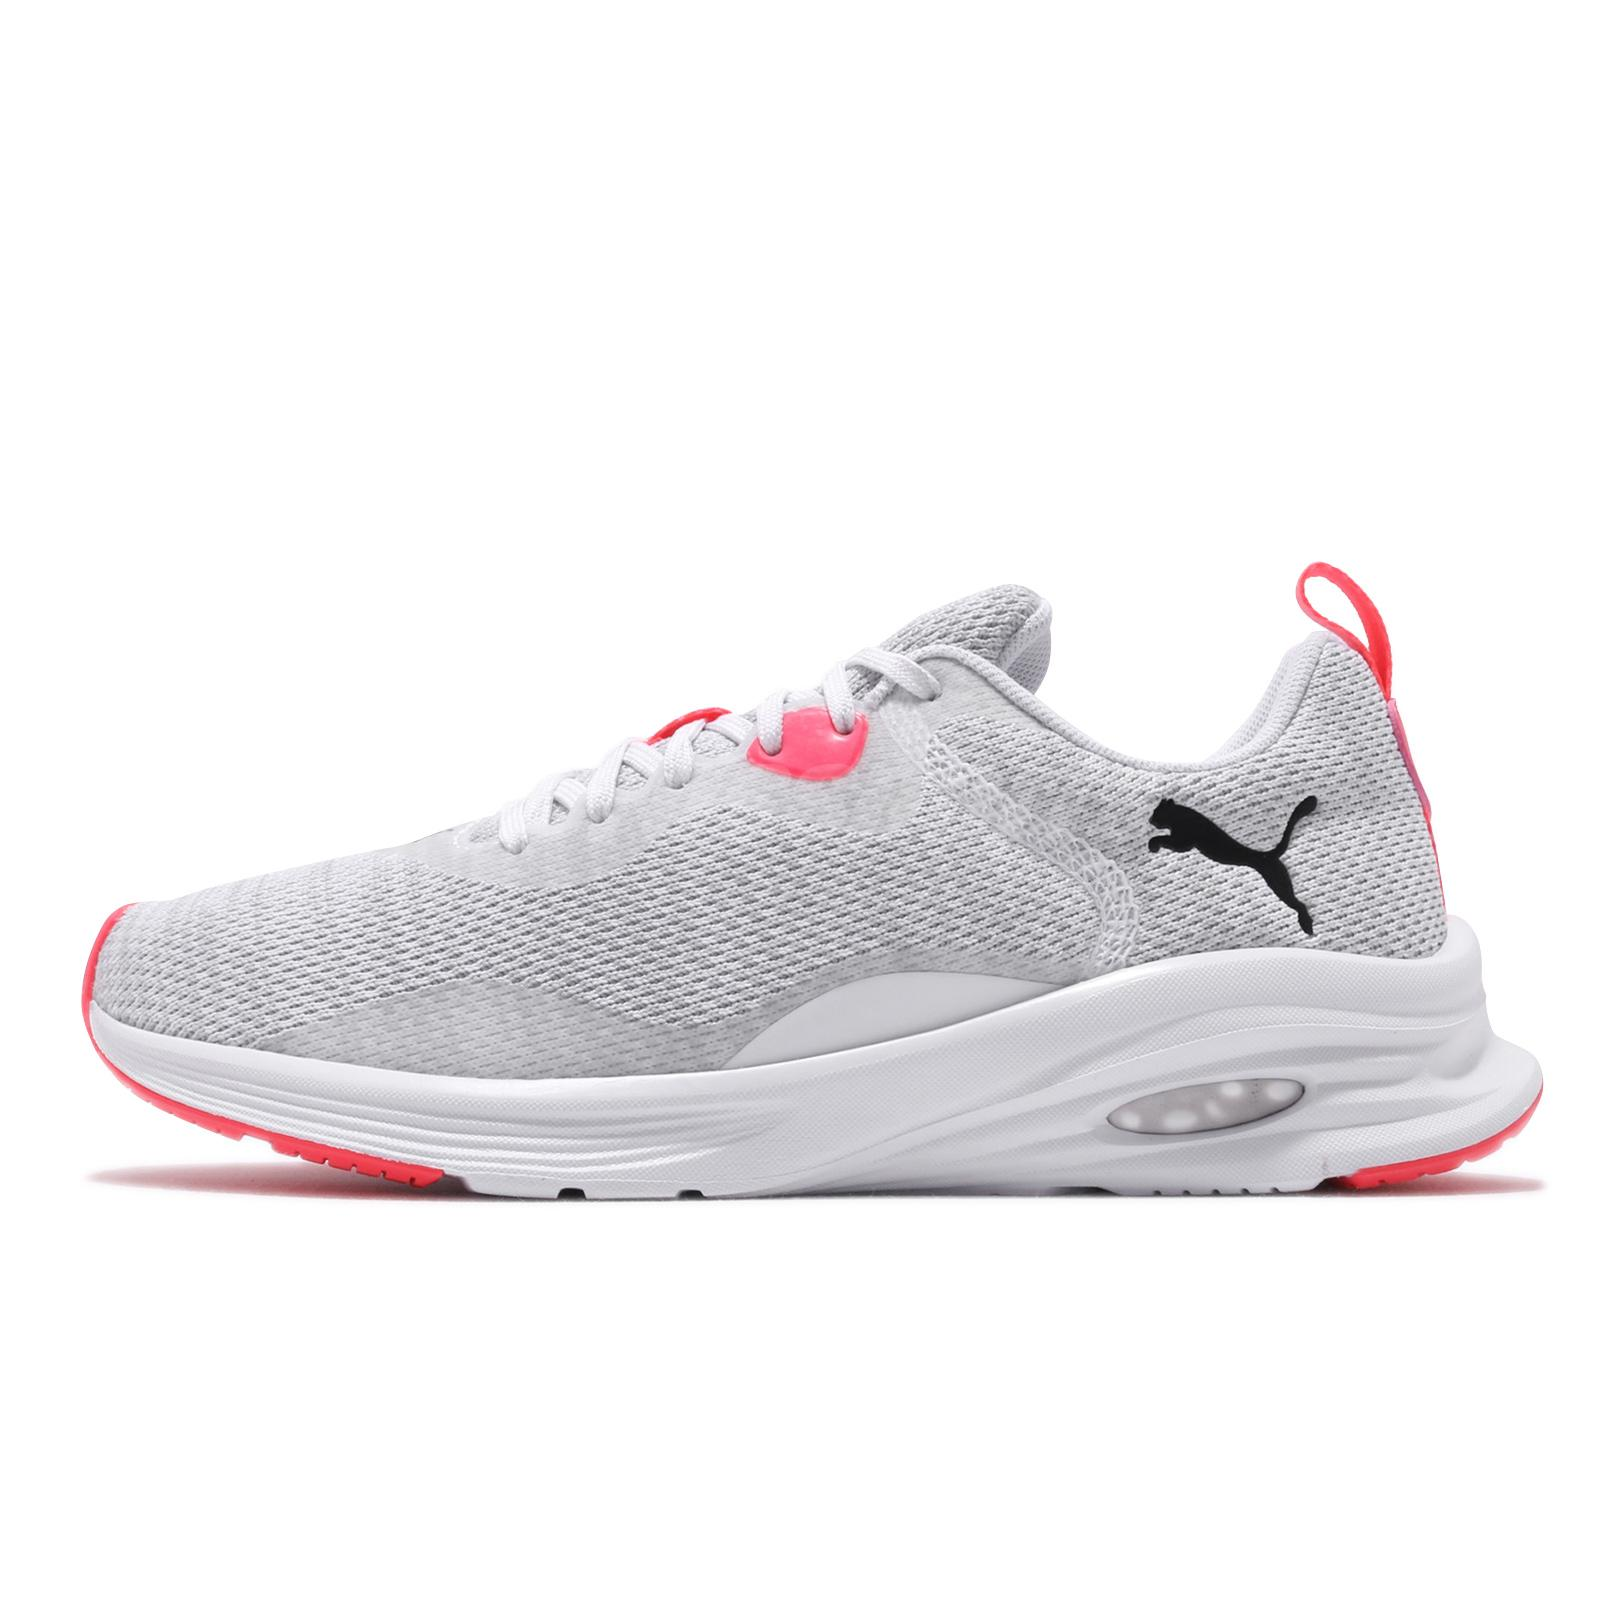 317f43a28b Details about Puma Hybrid Fuego Knit Wns White Pink Black Women Running  Shoe Sneaker 192957-02